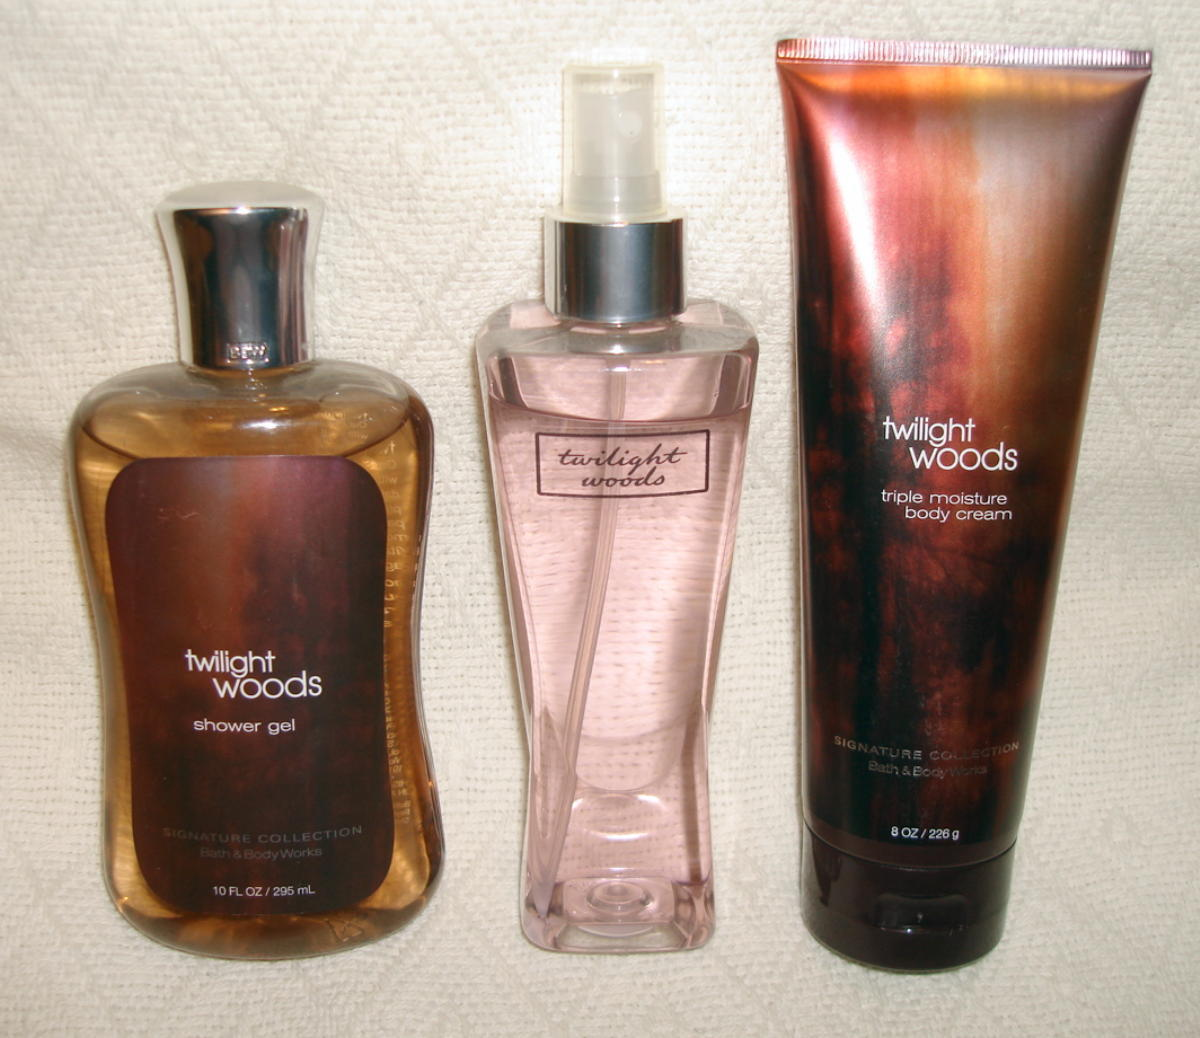 Twilight Woods Bath Amp Body Works Fragrance Mist Body Cream